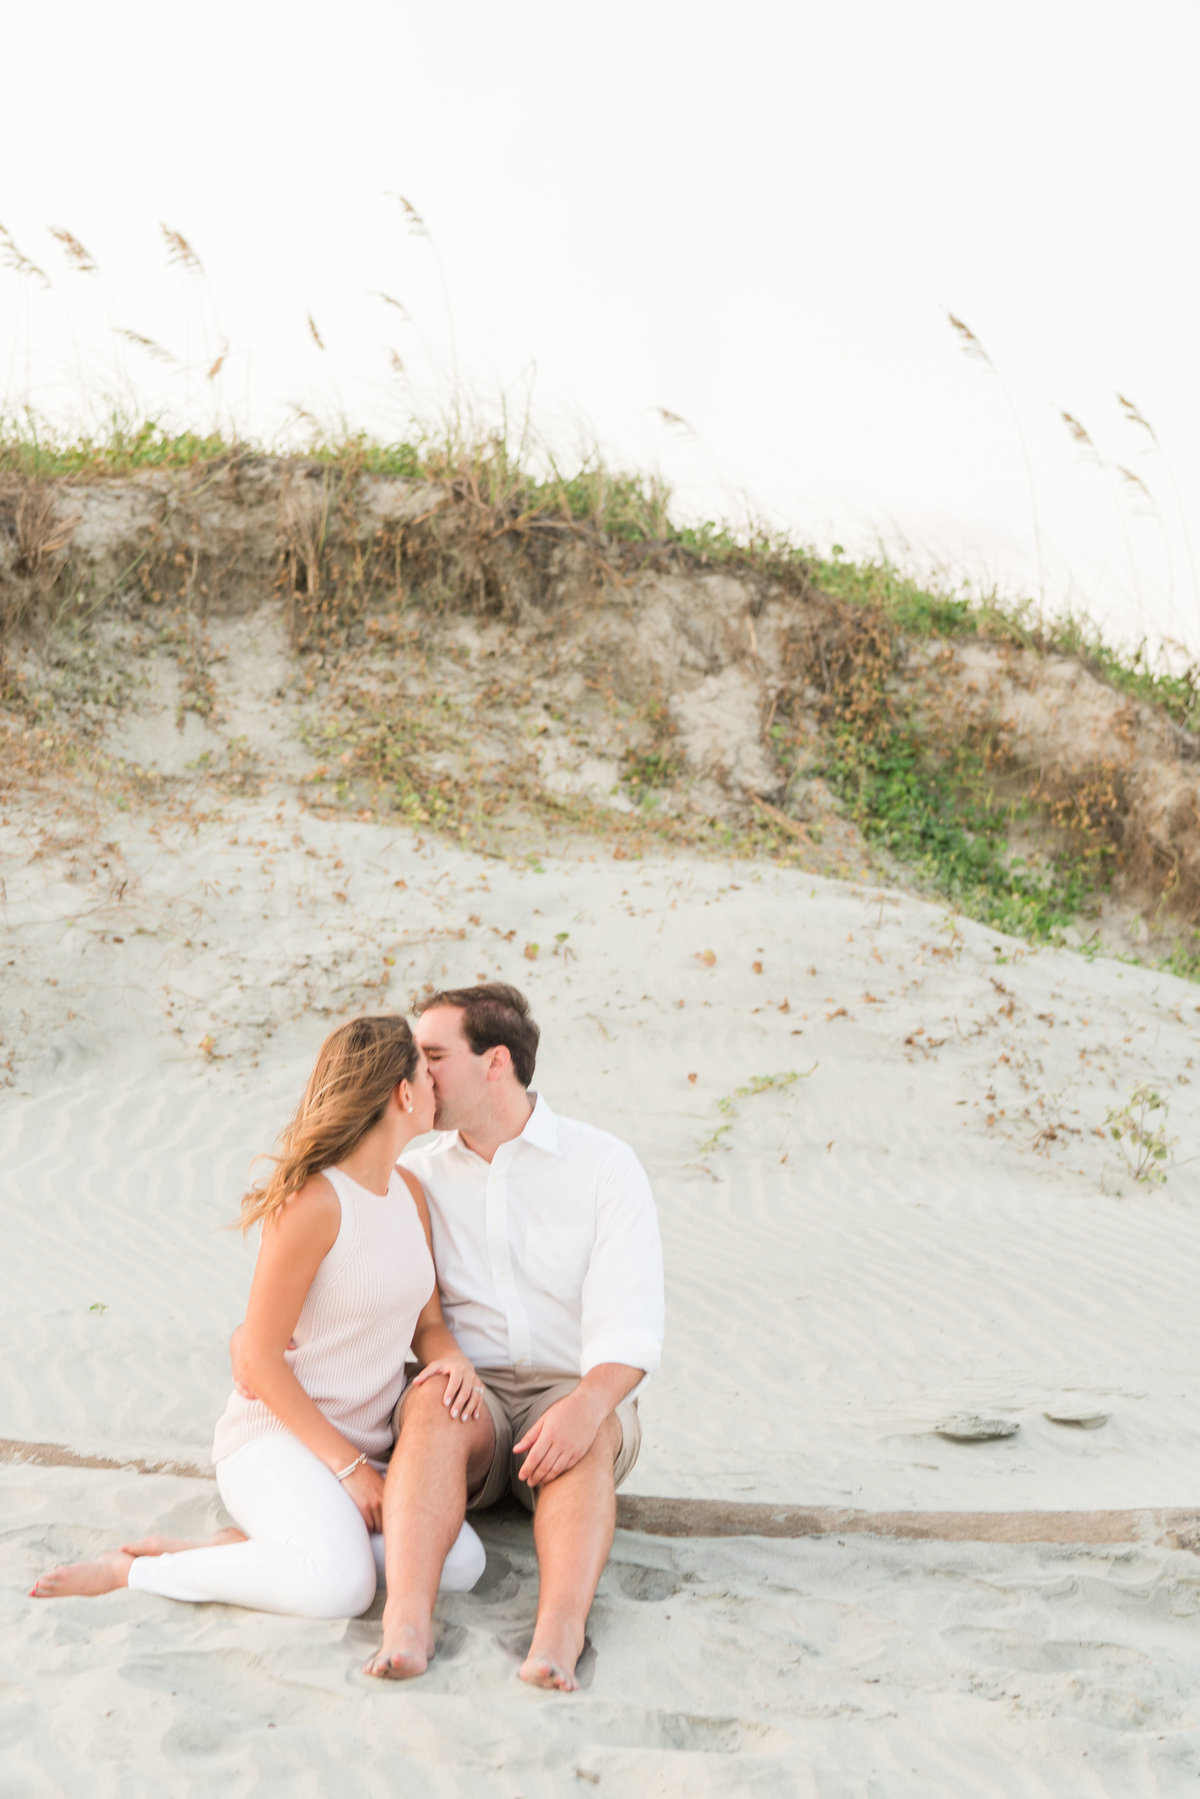 Kate Dye Photography Wedding Engagement Lifestyle Charleston South Carolina Photographer Bright Airy Colorful7